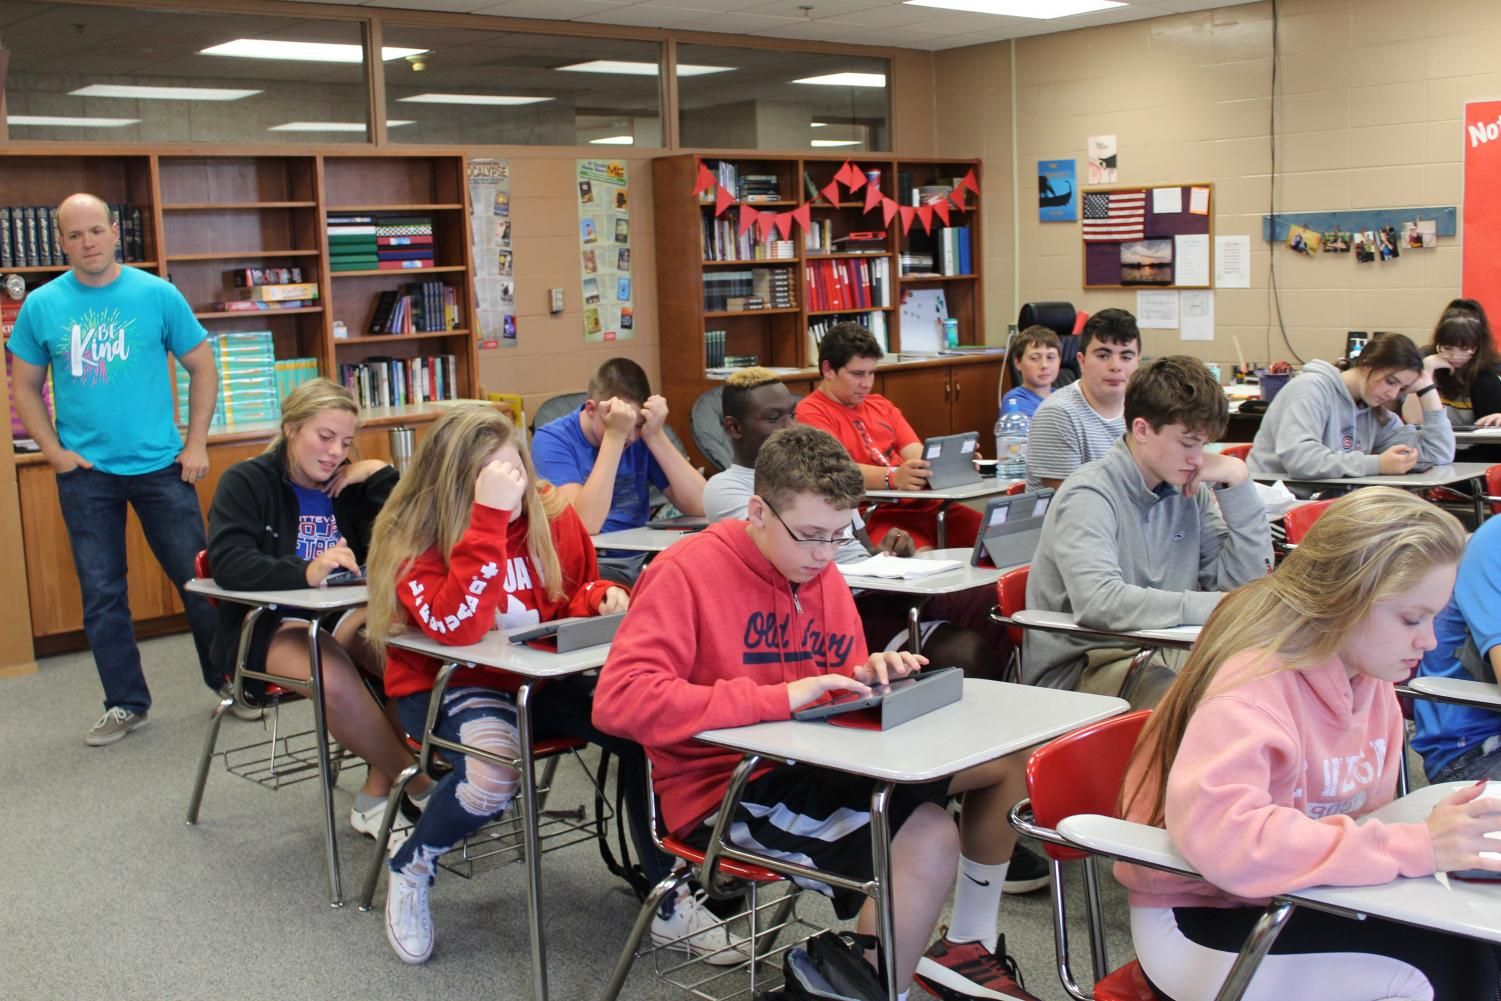 Matthew Fulton worked in Mrs. Hartwig's English class, studying up on reading and writing.